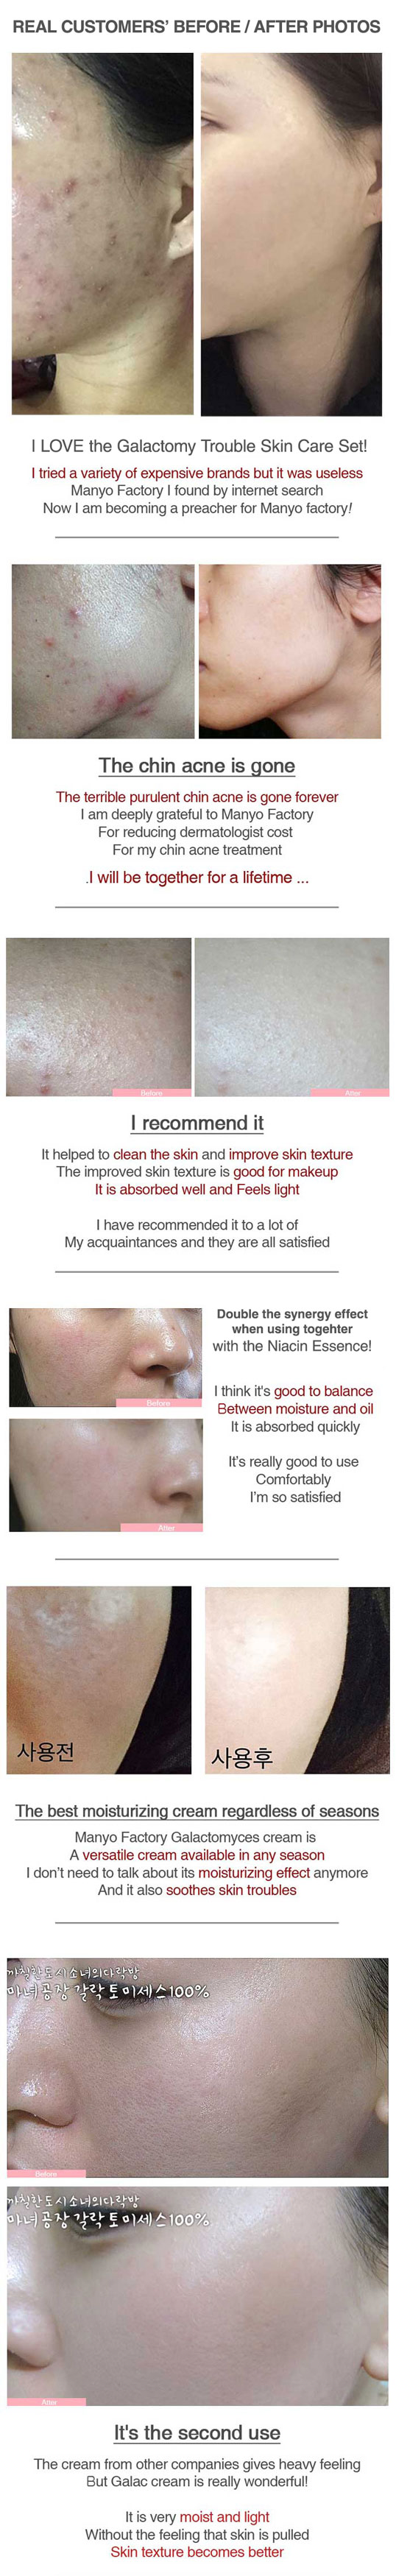 manyo galactomy trouble skin care anti acne kit customers feedback and photo before after use